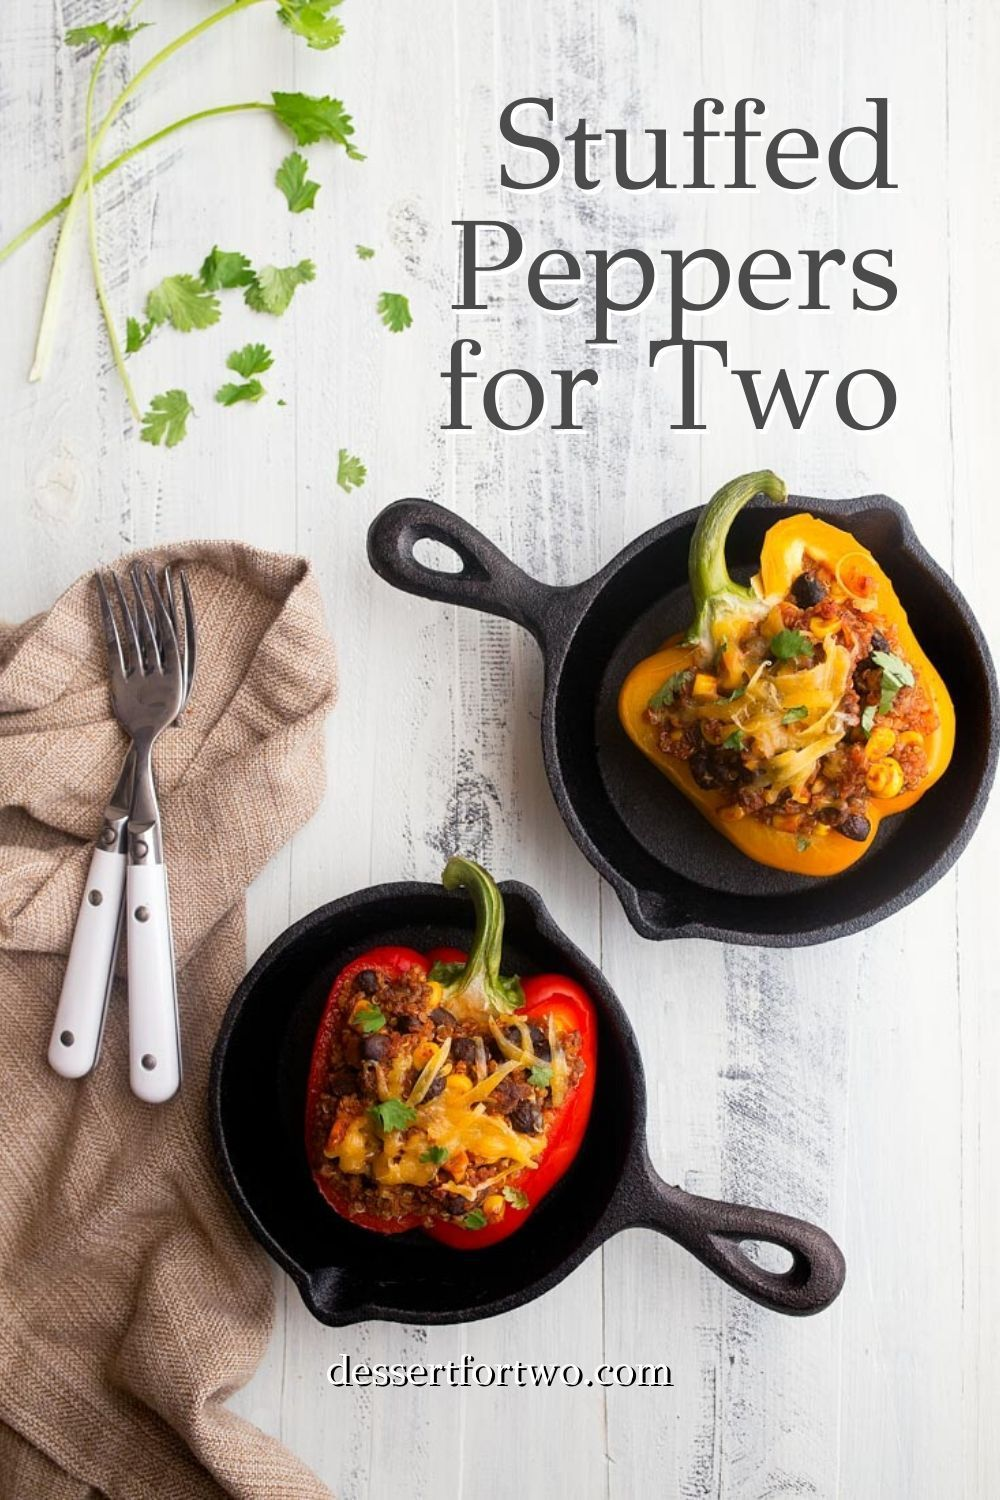 Southwestern Stuffed Peppers For Two Dinners For Two In 2020 Clean Eating Recipes For Dinner Stuffed Peppers Clean Eating Dinner